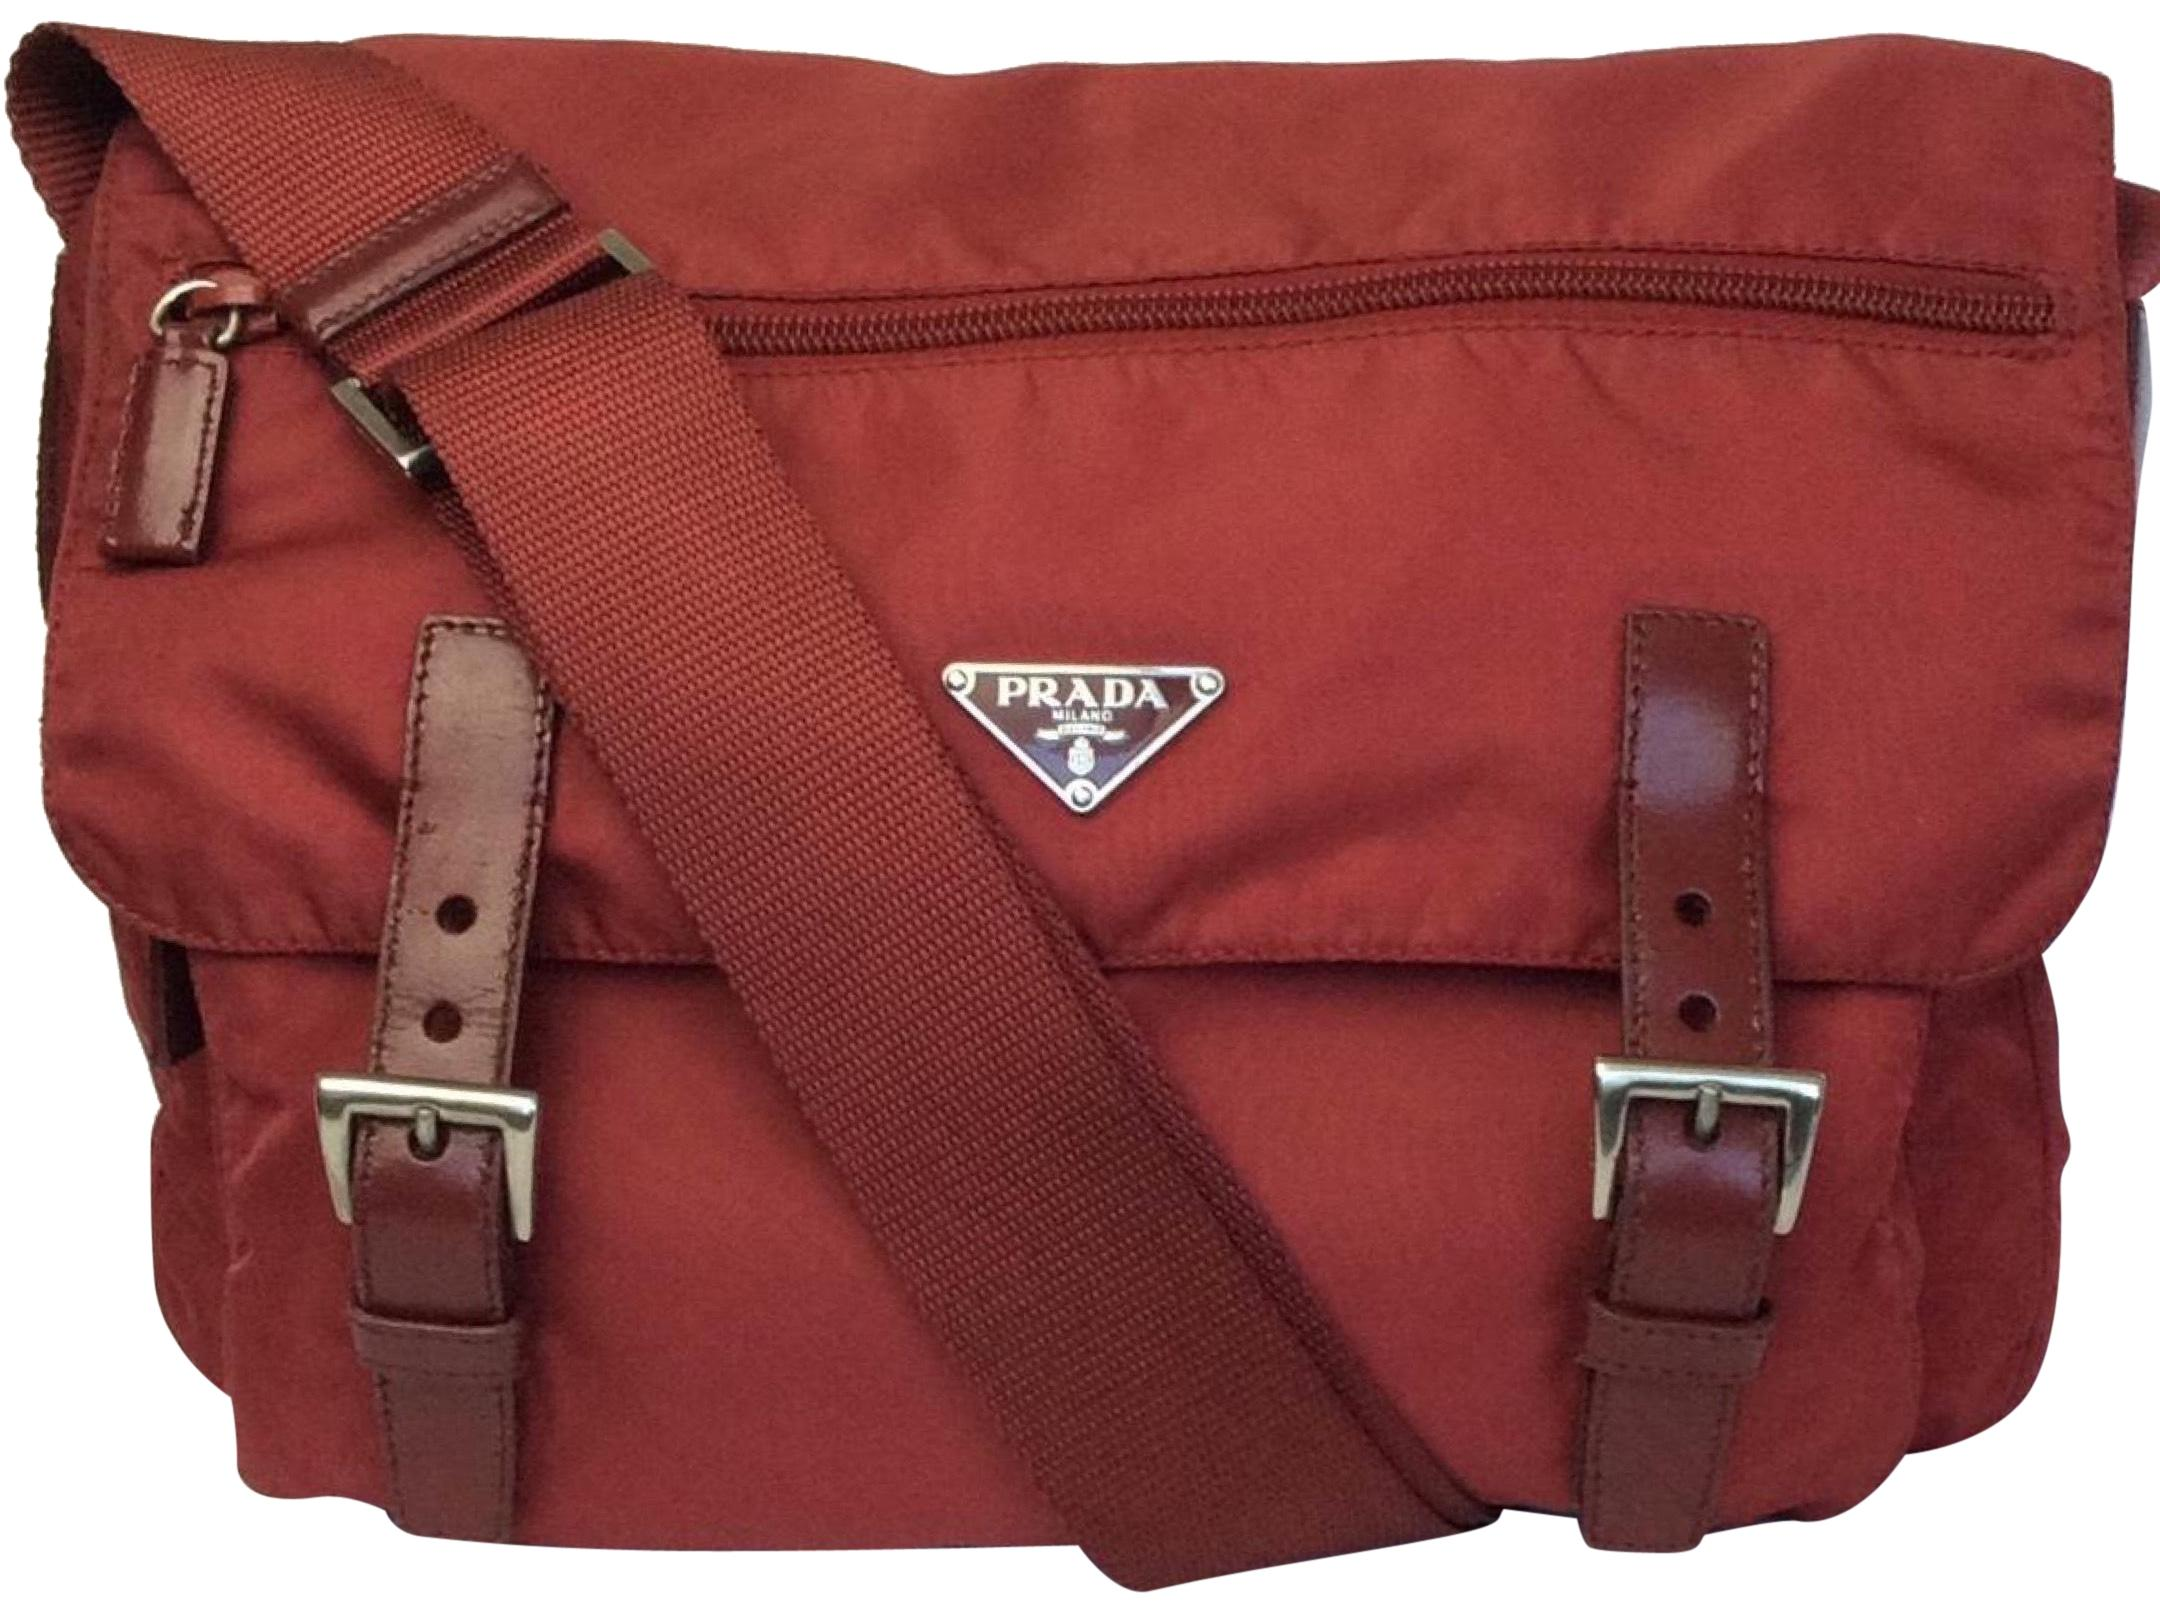 d3fcac466c ... outlet 98e8d d3874  sweden prada red messenger bag 09820 84ced